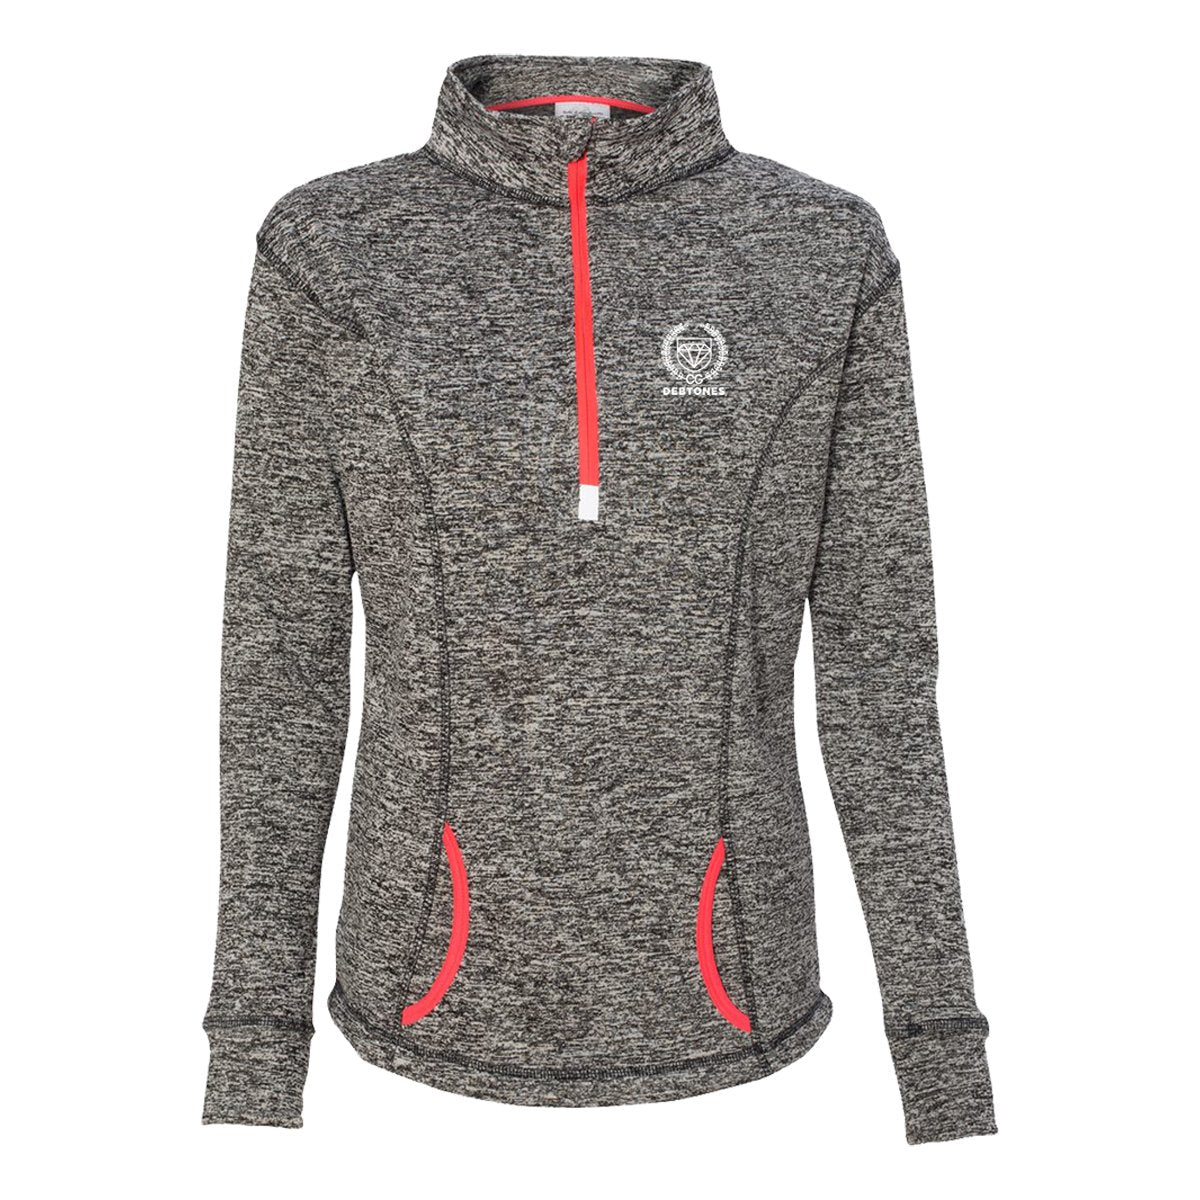 Debtones Charcoal Heather 1/4 Zip Pullover